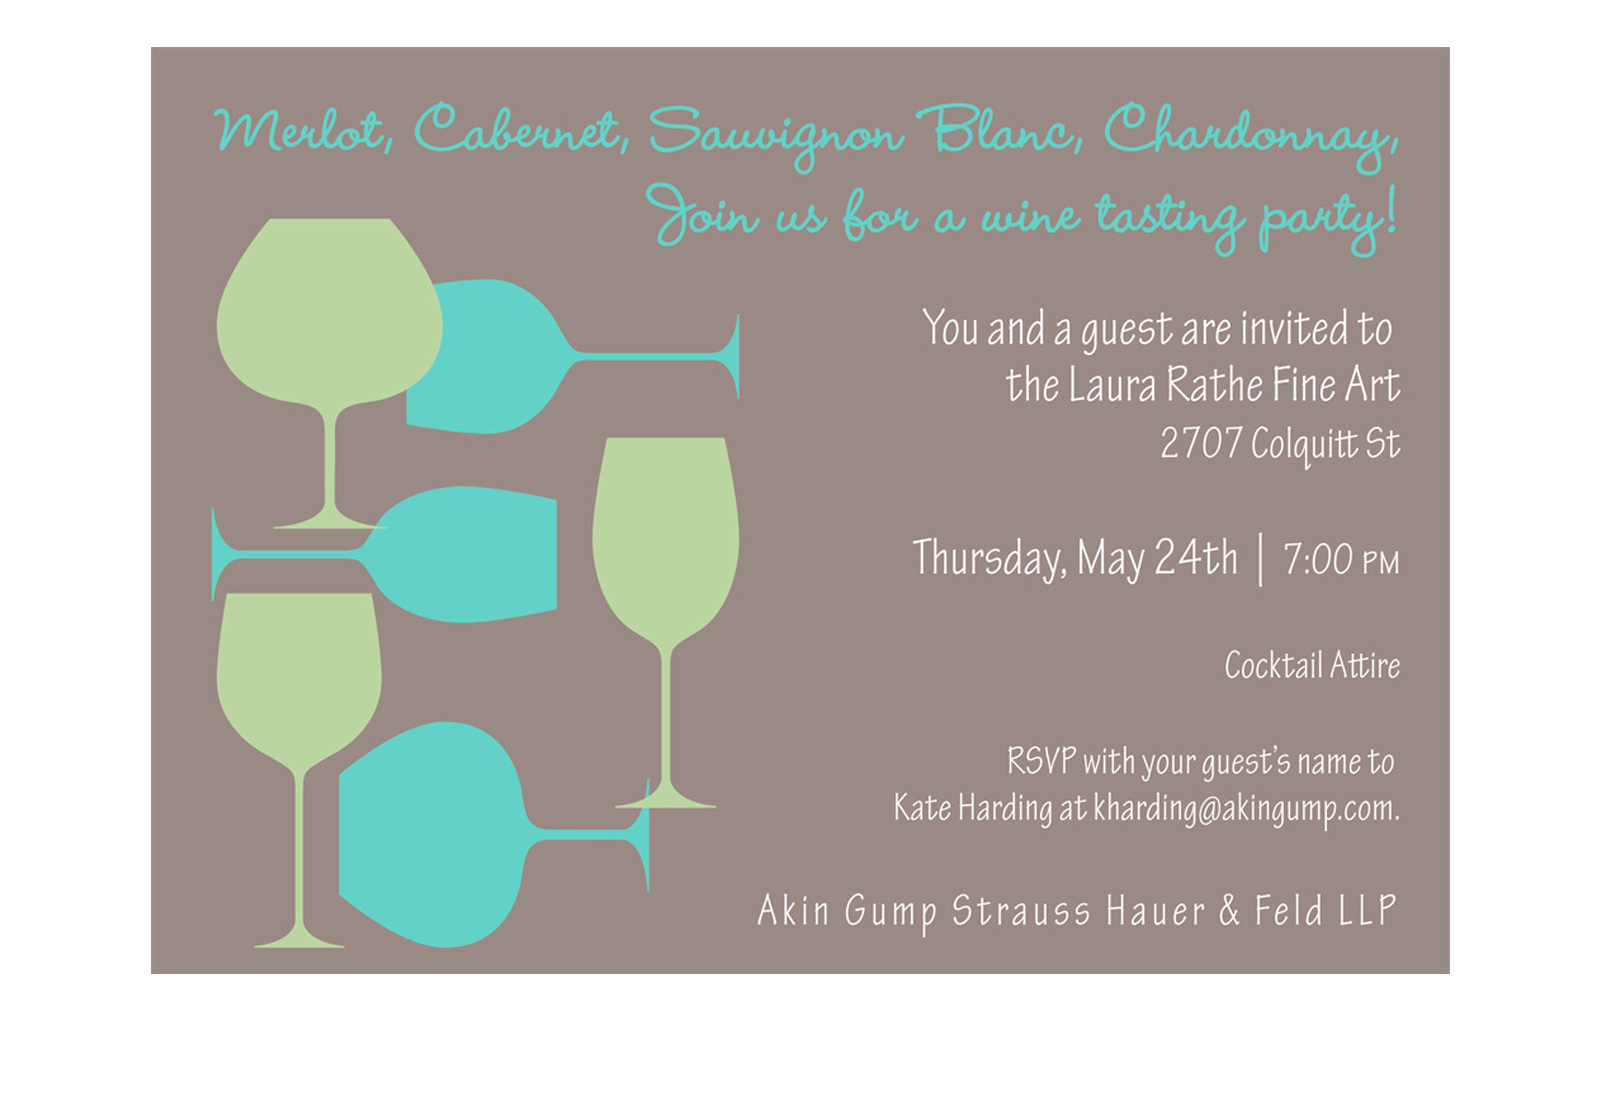 FangMei Liu Portfolio Site – Wine Tasting Party Invitation Wording